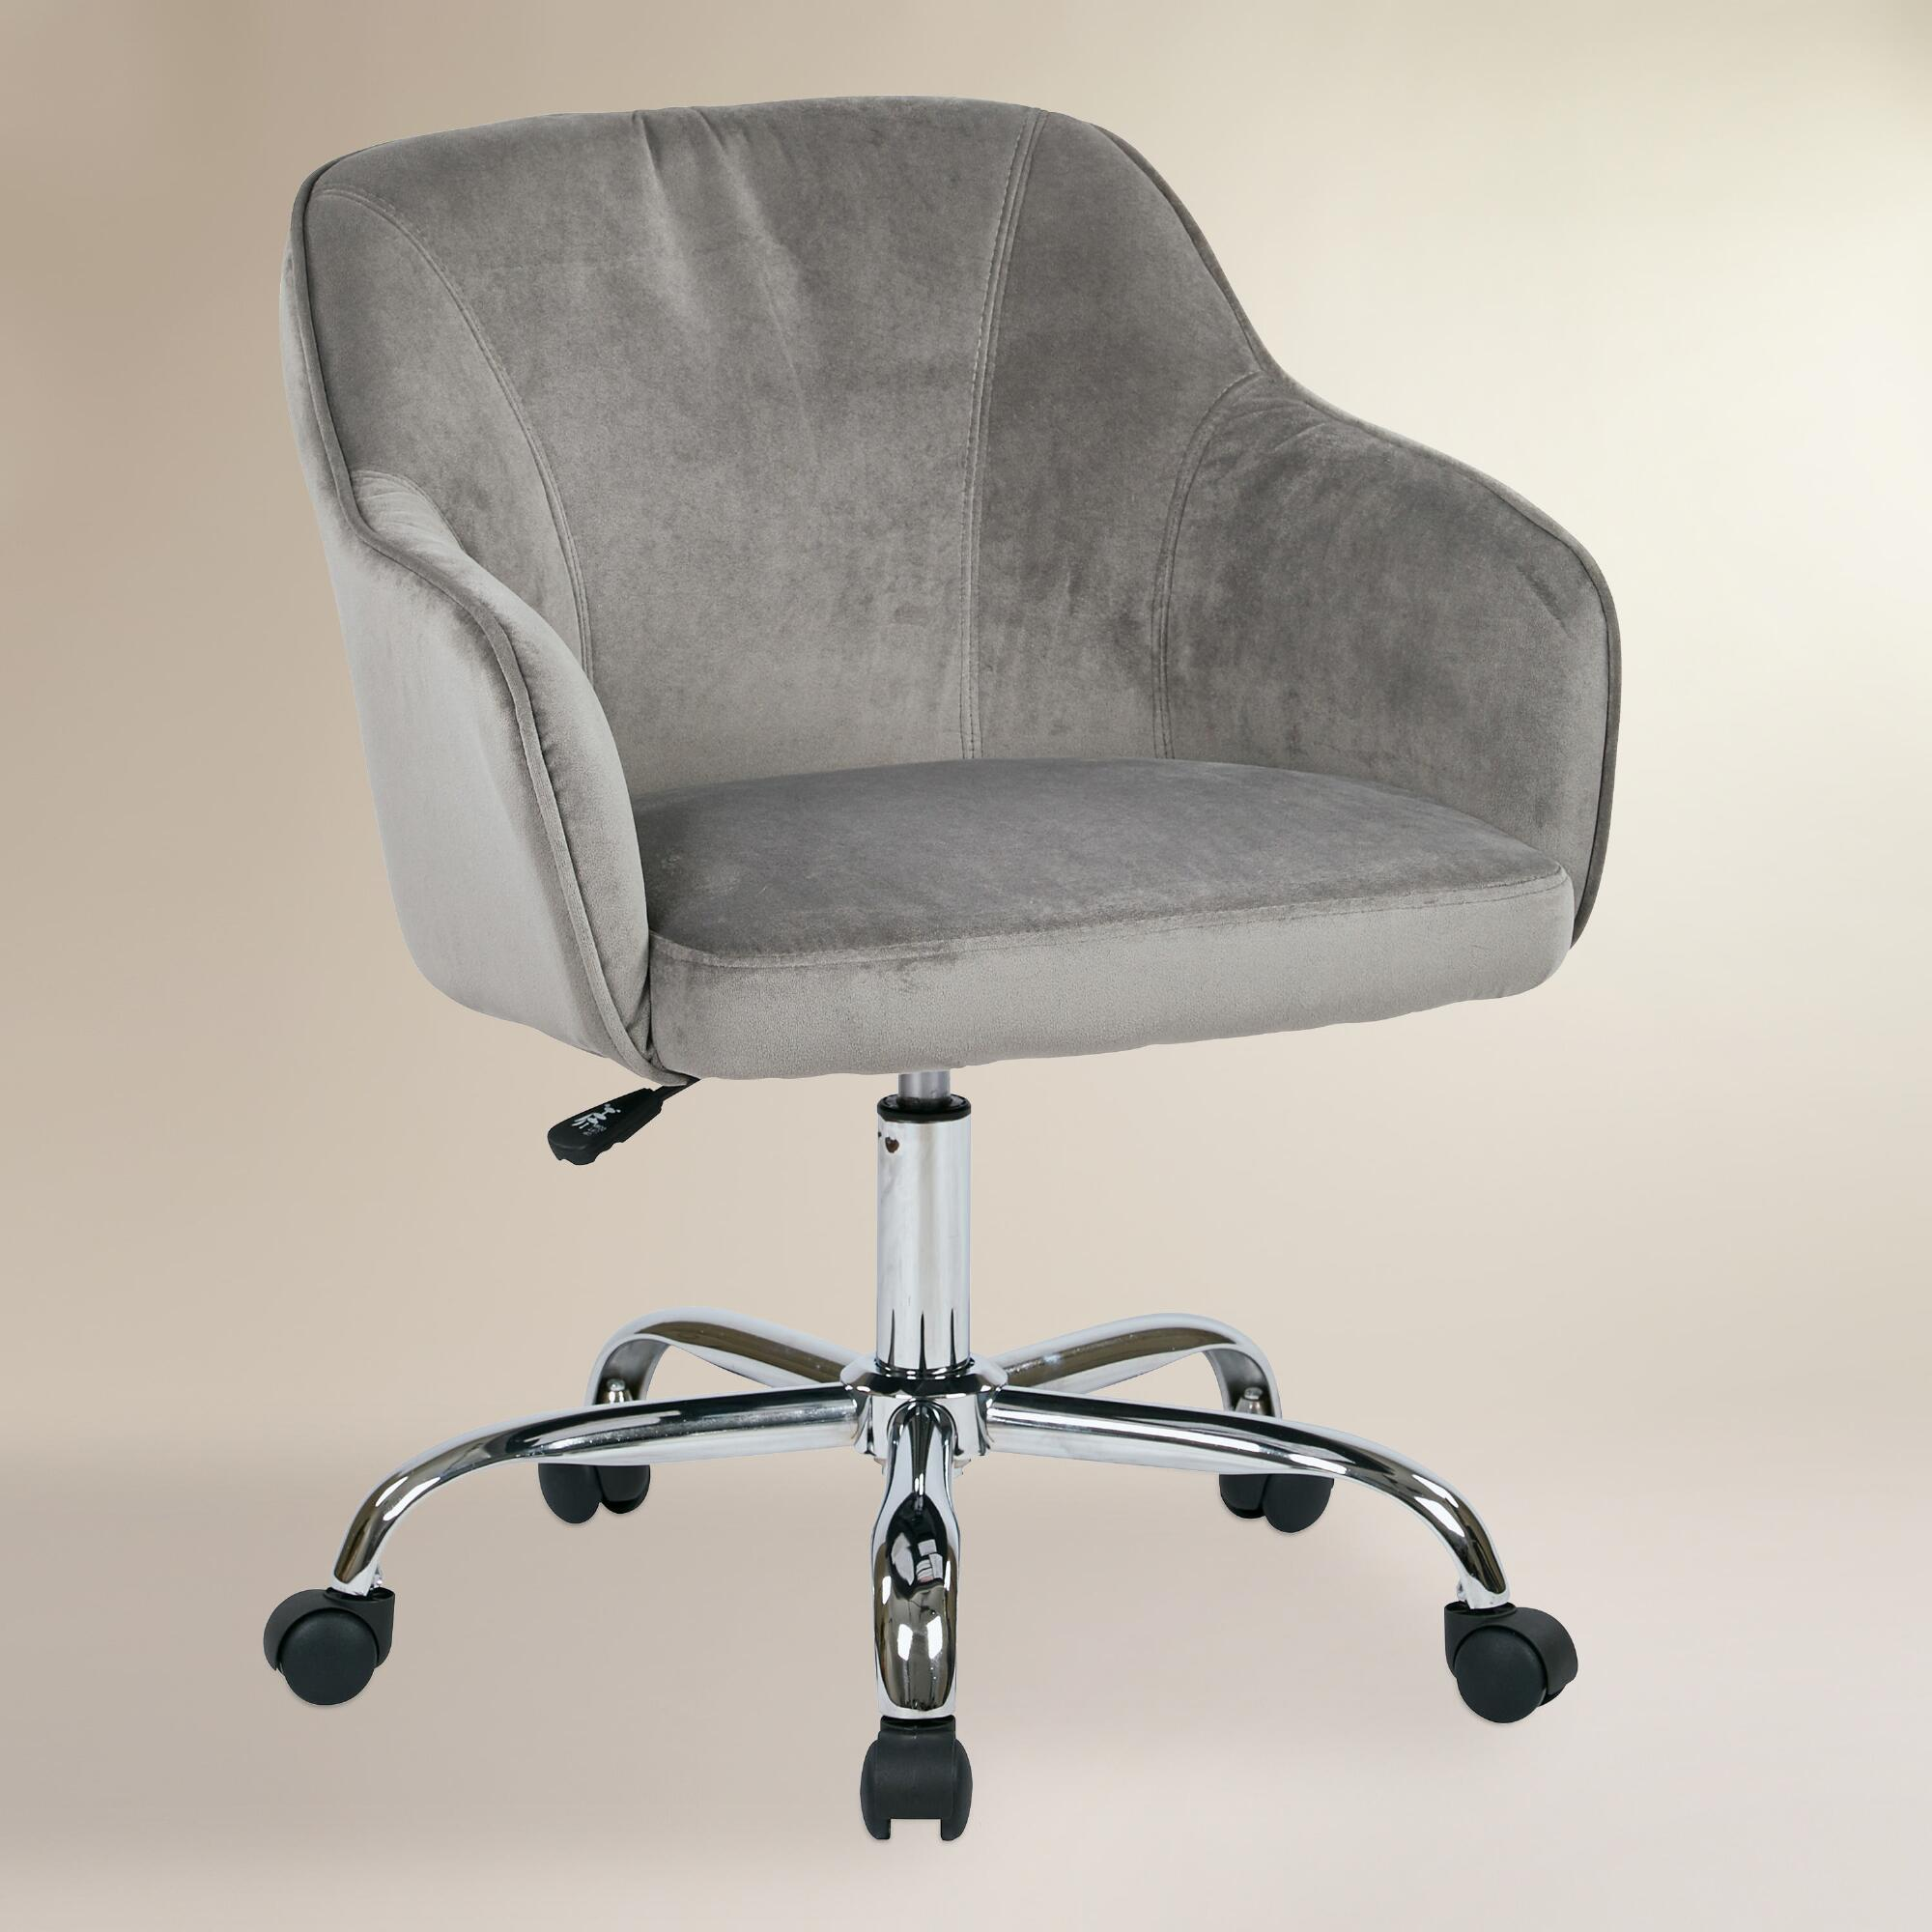 fabric office chairs with arms and wheels architecture: upholstered office chair on casters popular without wheels CBWXDOB